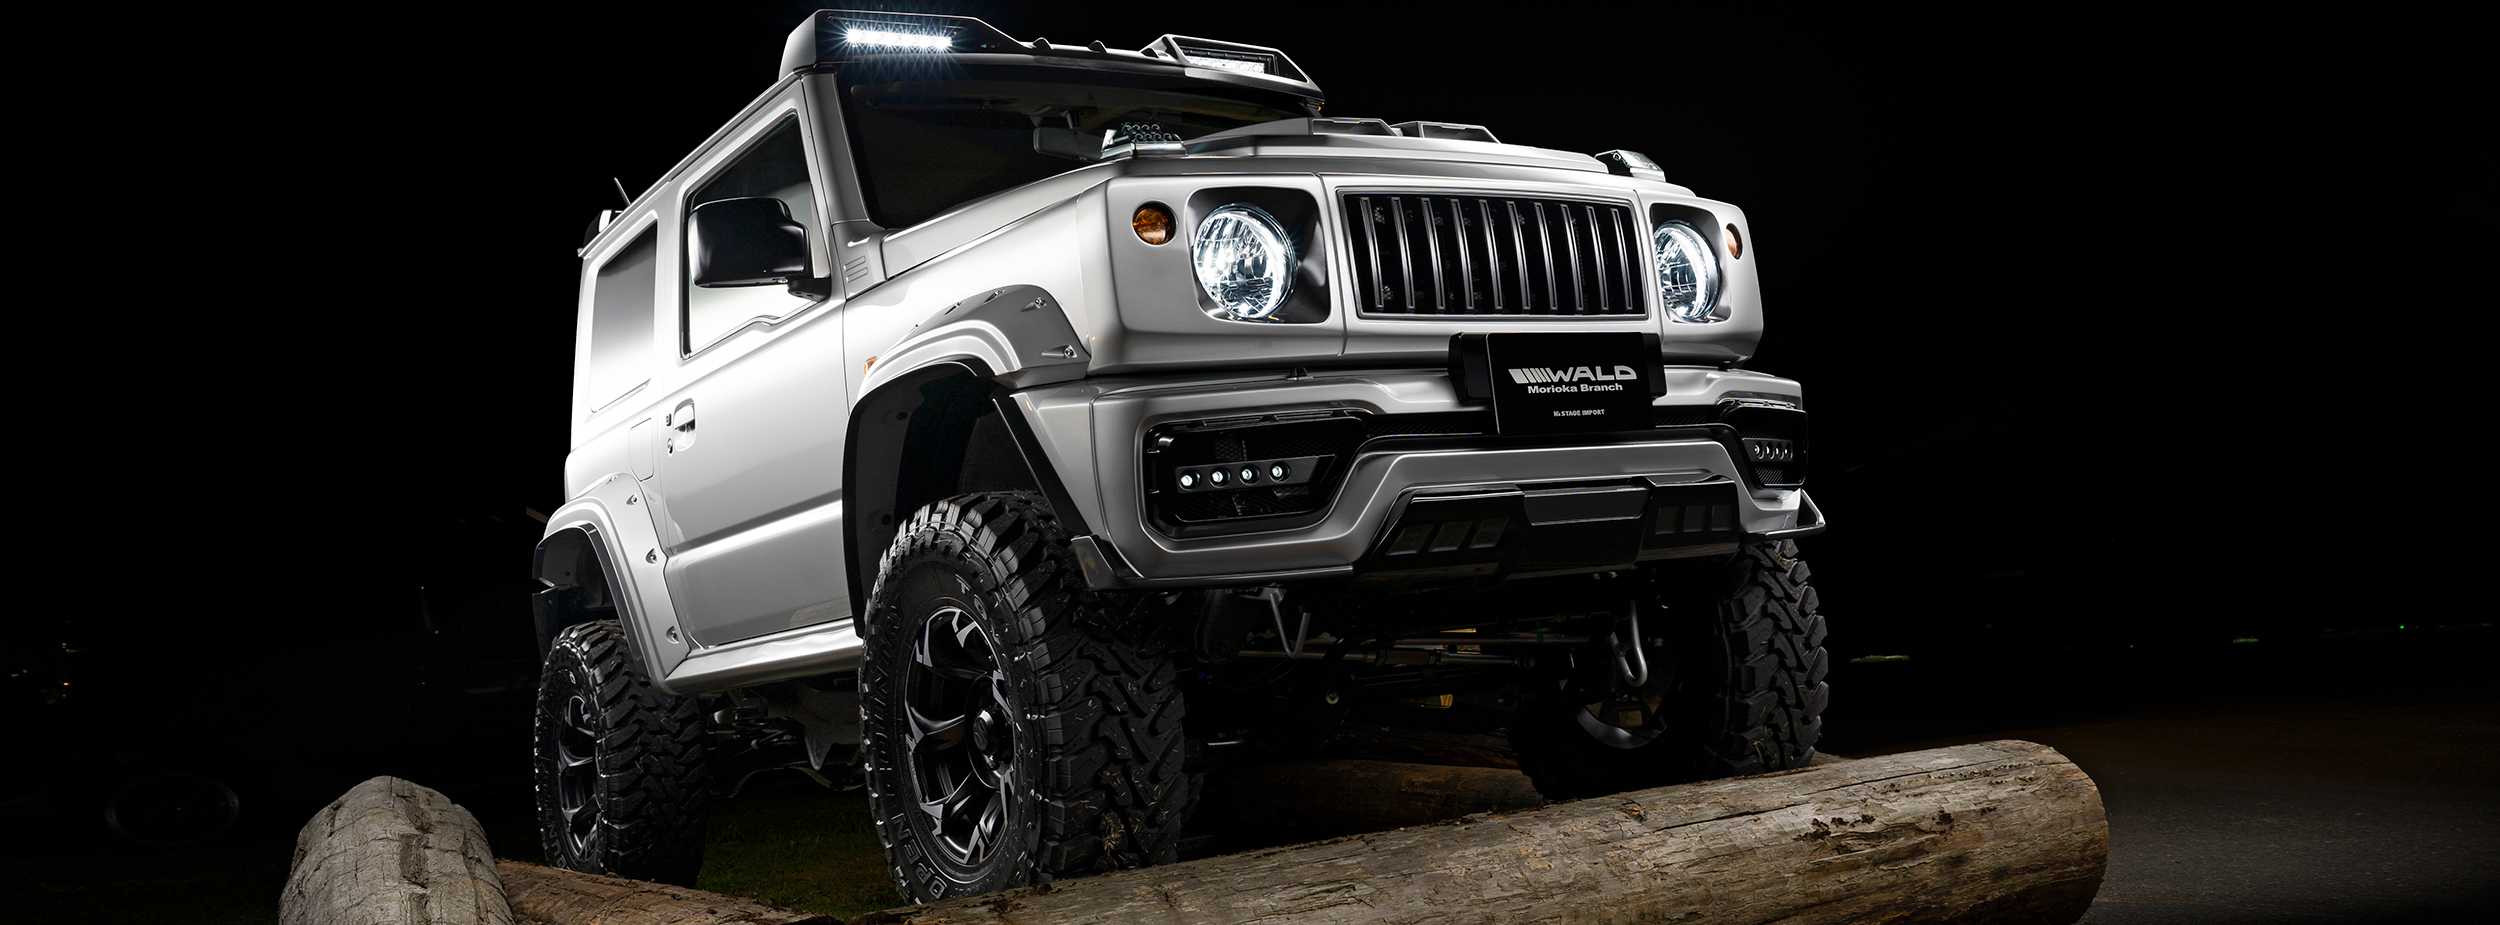 JIMNY SIERRA WALD SPORTS LINE BLACK BISON EDITION